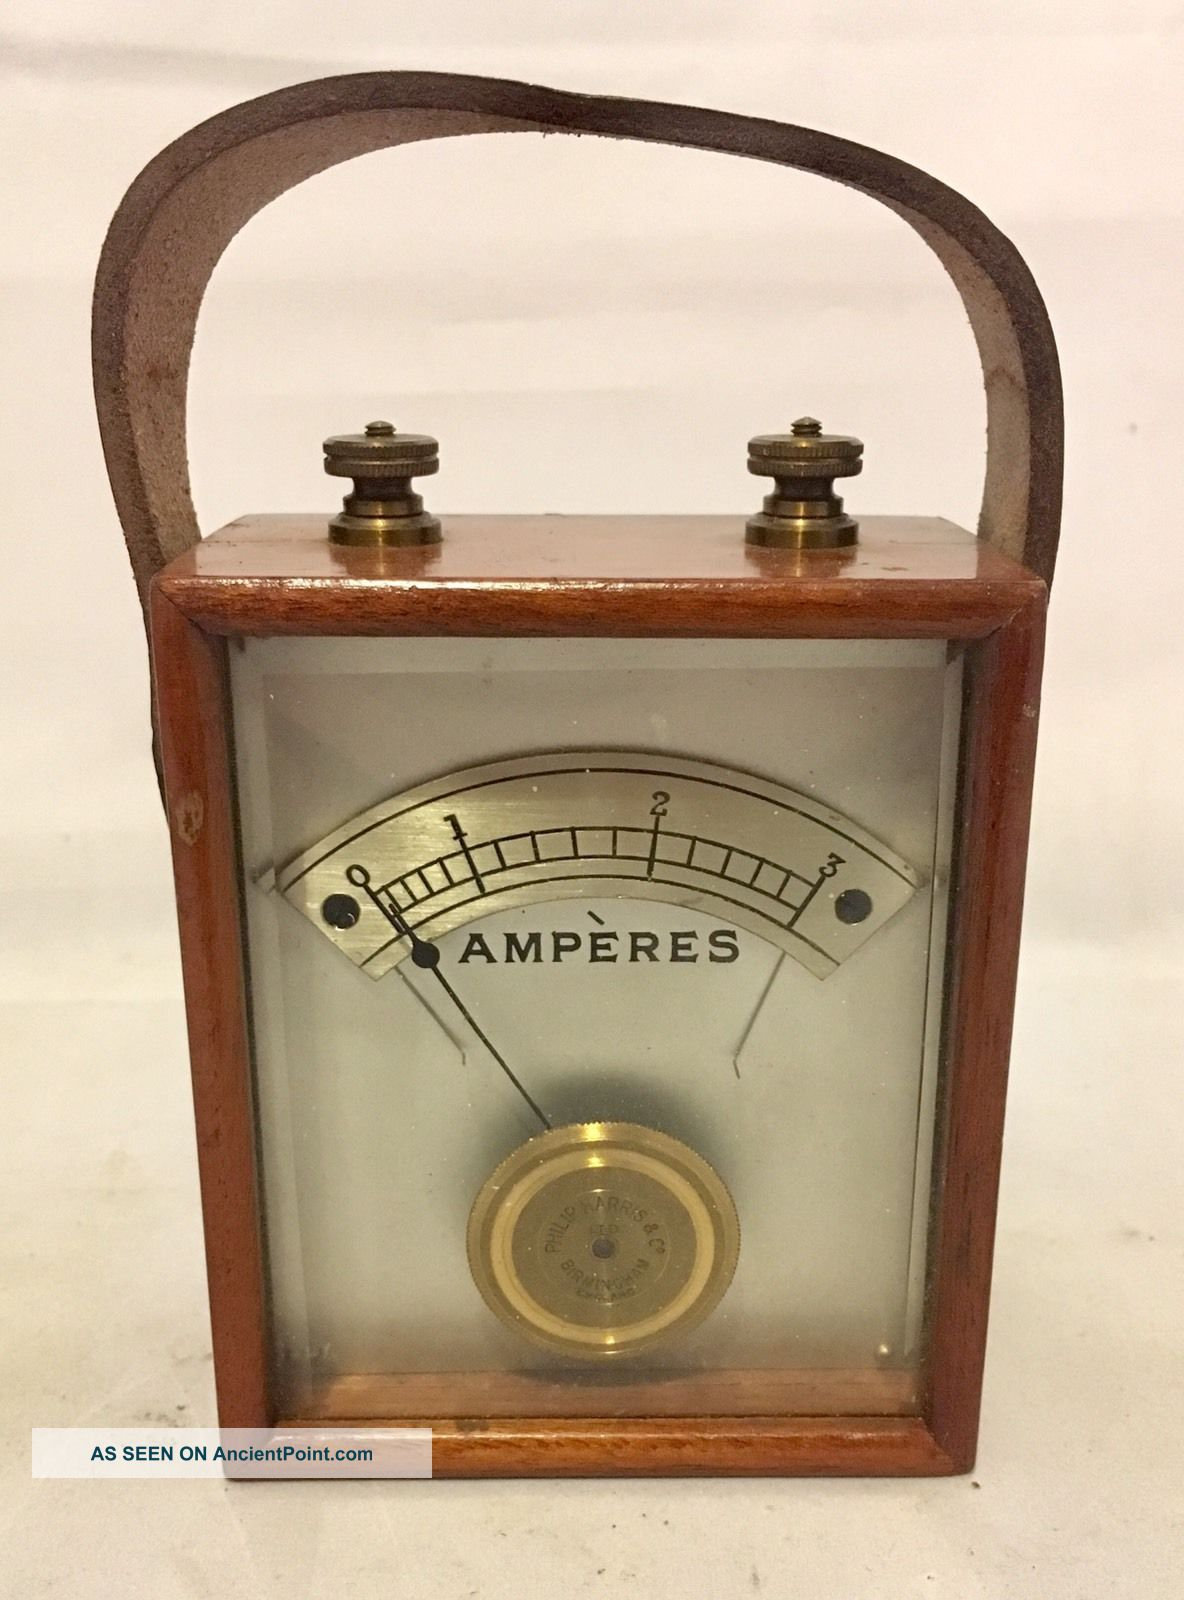 Antique Vintage Ammeter Amperes Meter Machine By Philip Harris Birmingham Other Antique Science Equip photo